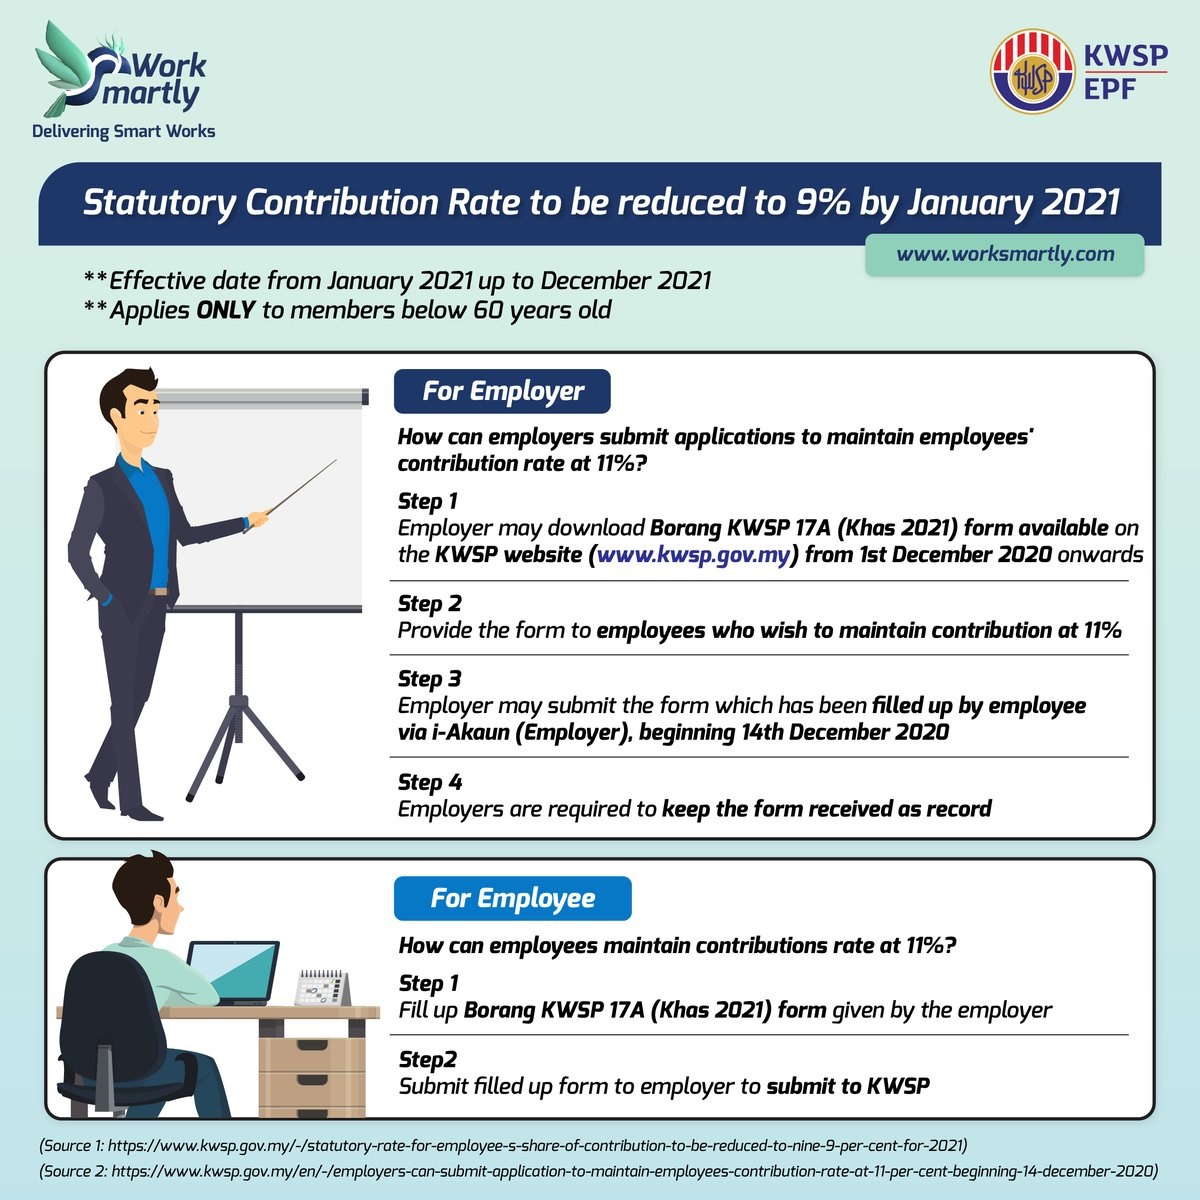 New Announcement by KWSP: Statutory rate for employee's share of contribution to be reduced to 9% for 2021, employees may choose to maintain at 11% by submitting Borang KWSP 17A (Khas 2021) form accordingly.  #epf #kwsp #hr #work #workplace #hrtech #hrsoftware #digitalhr https://t.co/x4L1TiWB7t